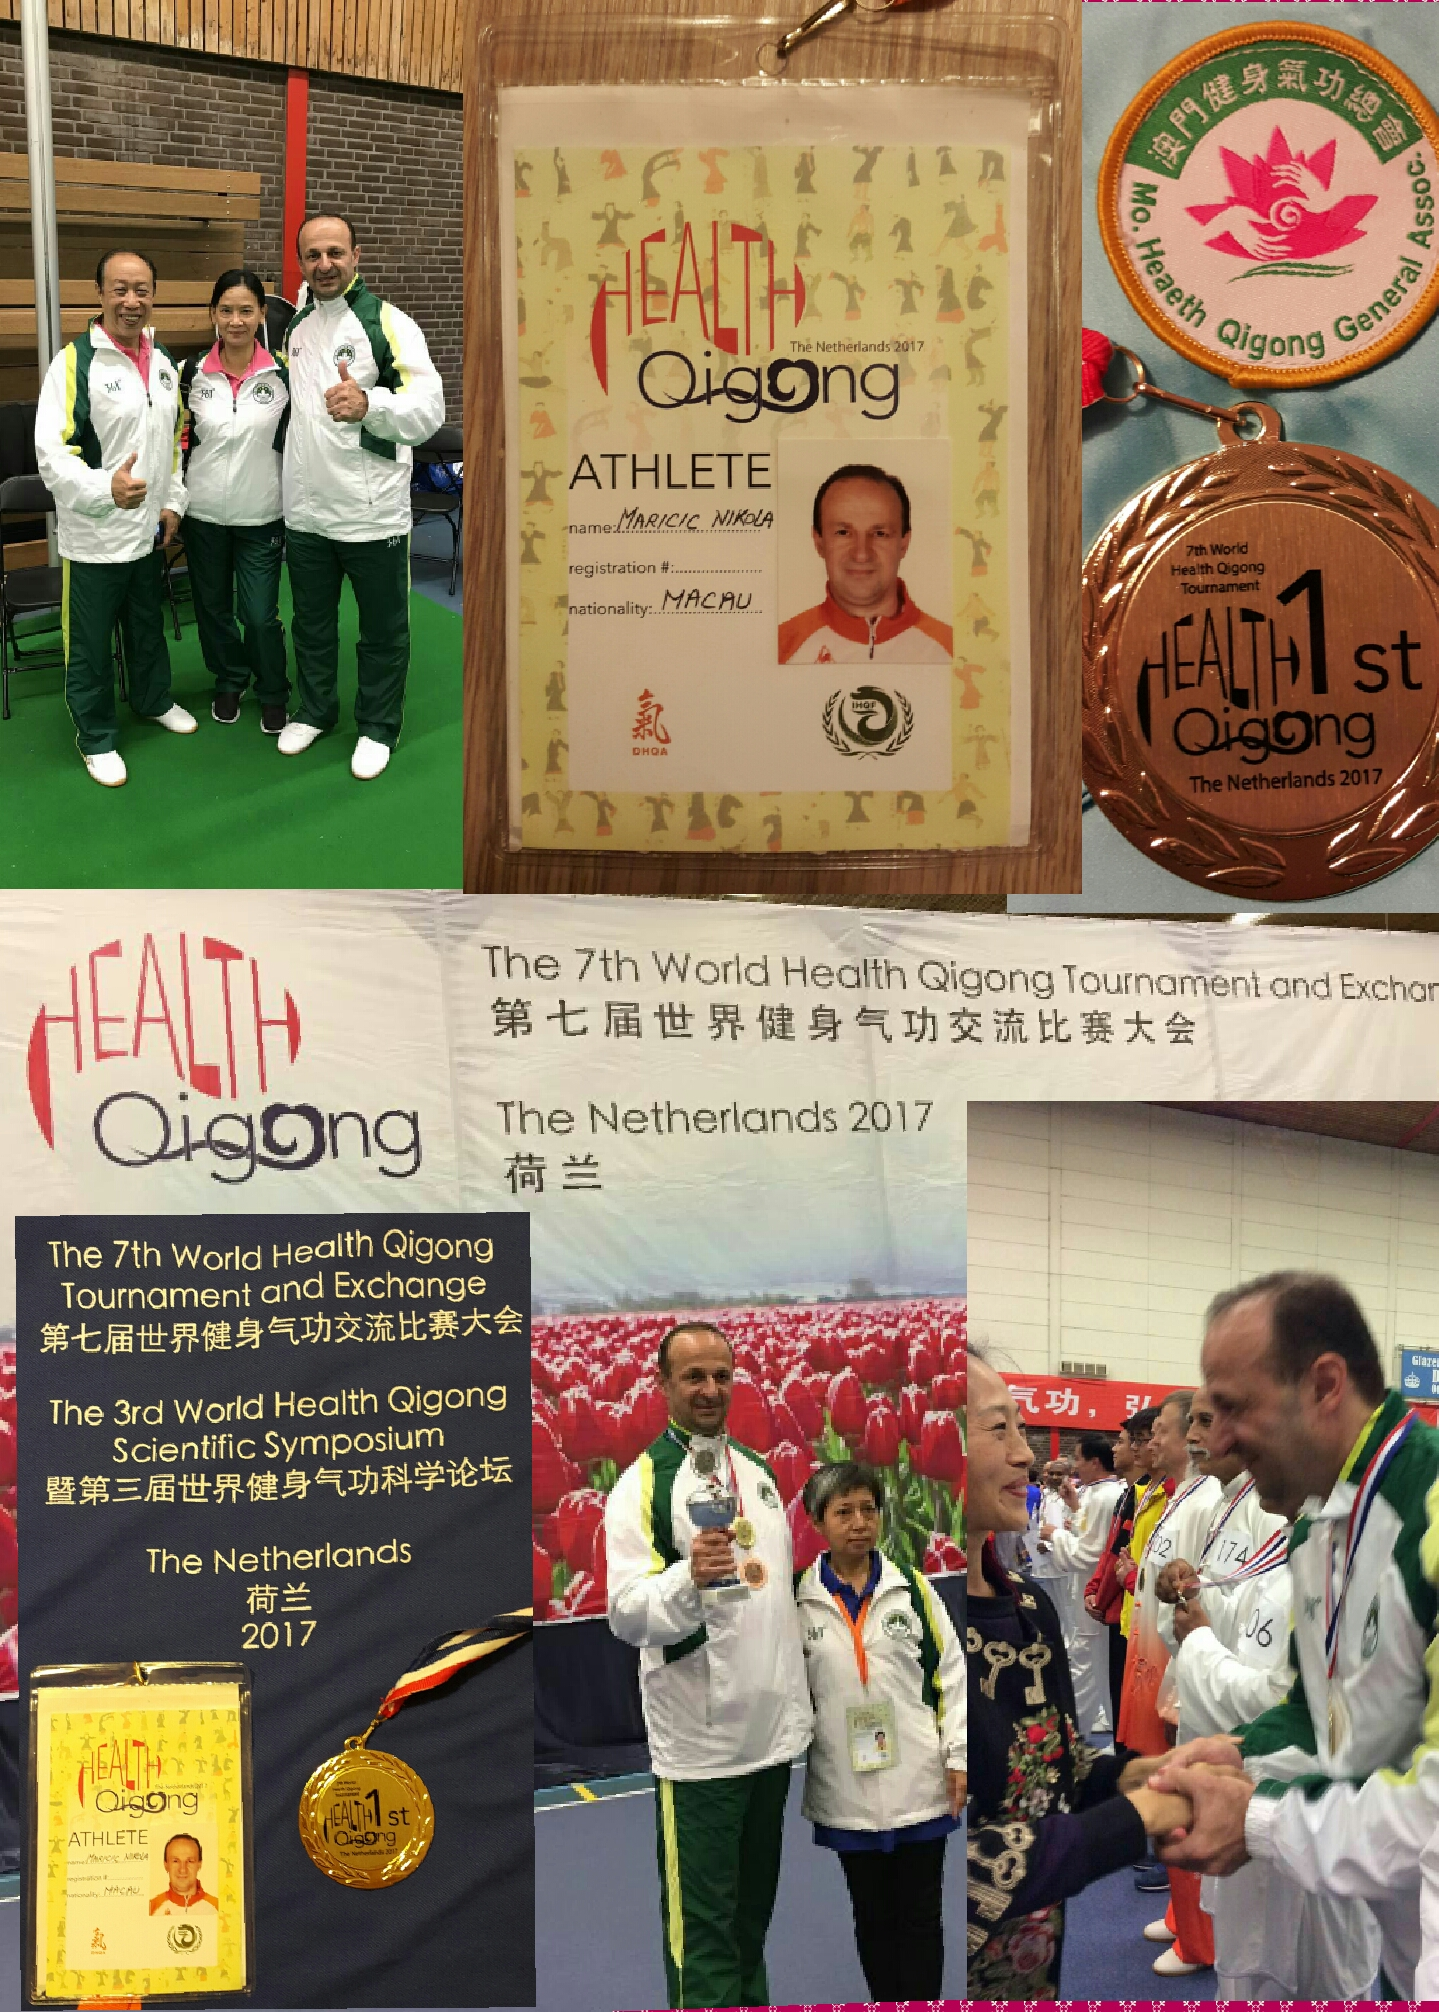 health qigong world tournament holland